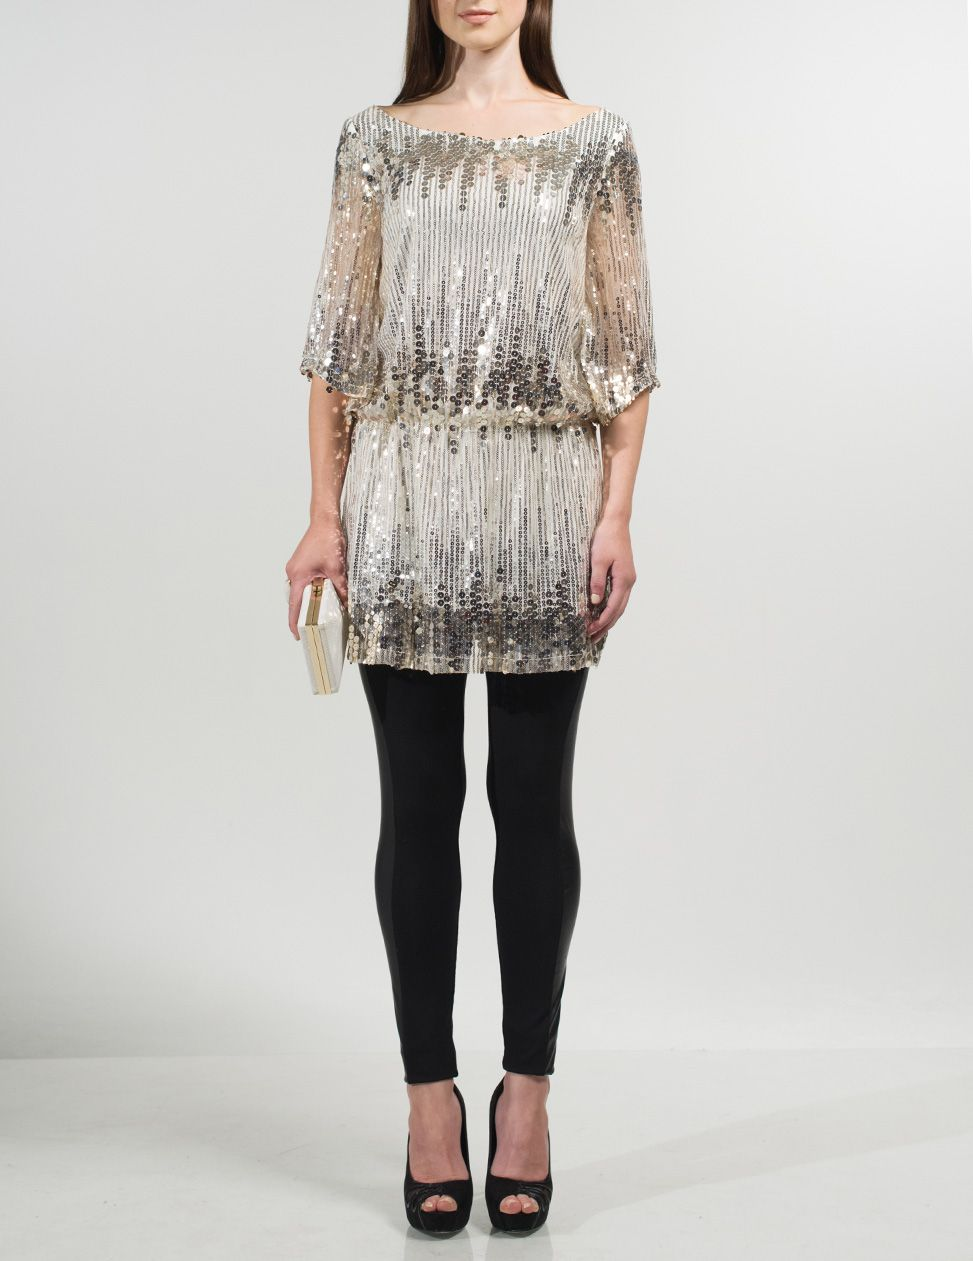 Dini silver embellished top